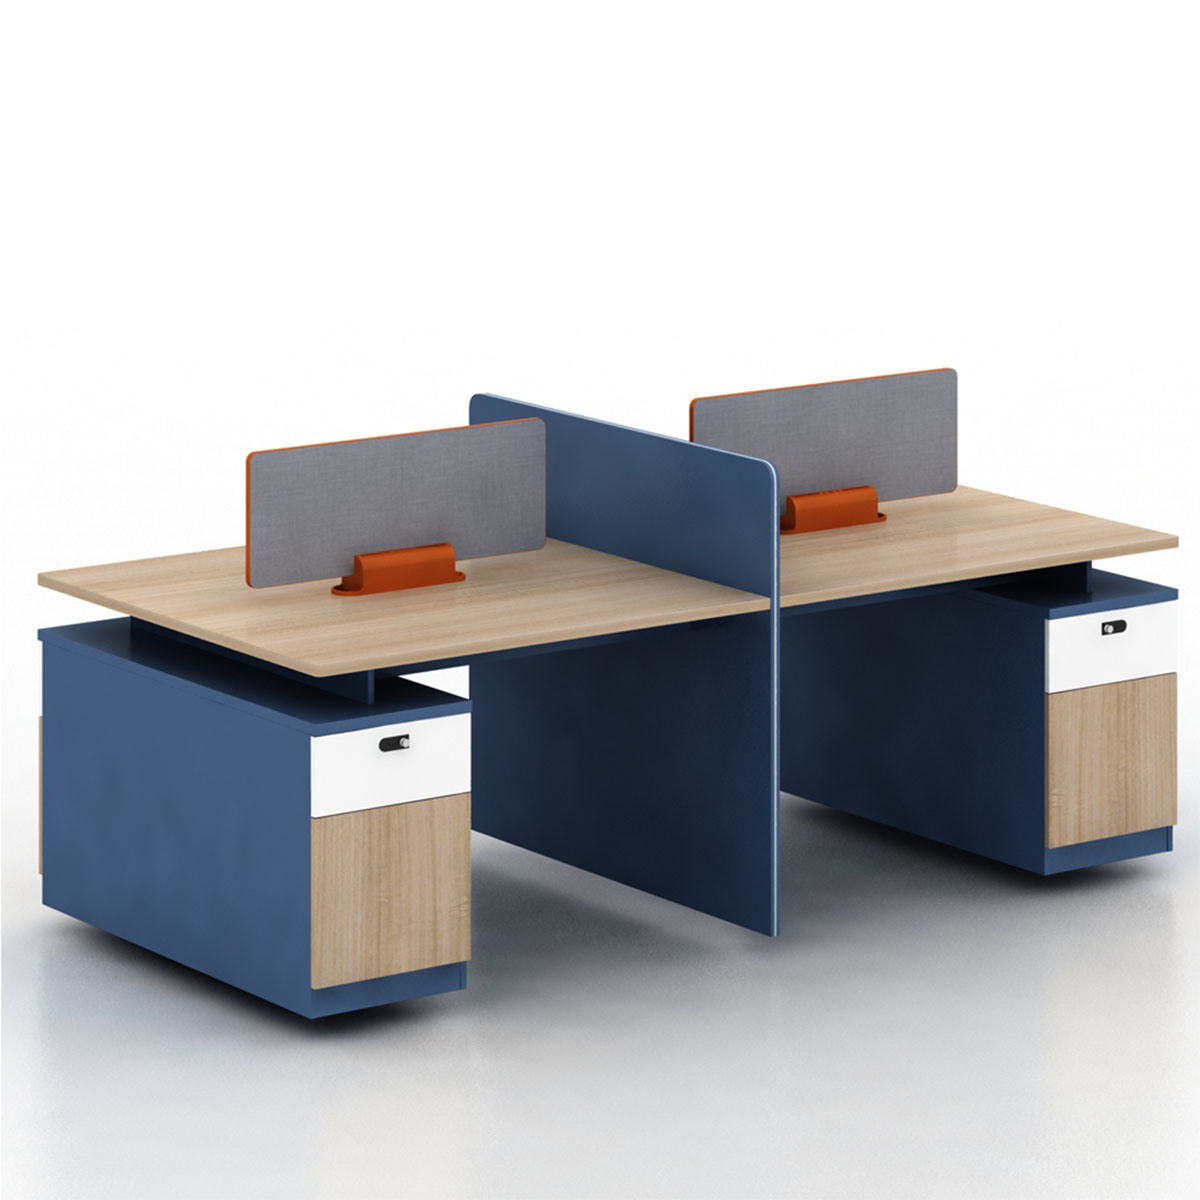 China Industrial Loft Style Office Furniture Office Table Office Desk For Staff China Office Desks Office Table